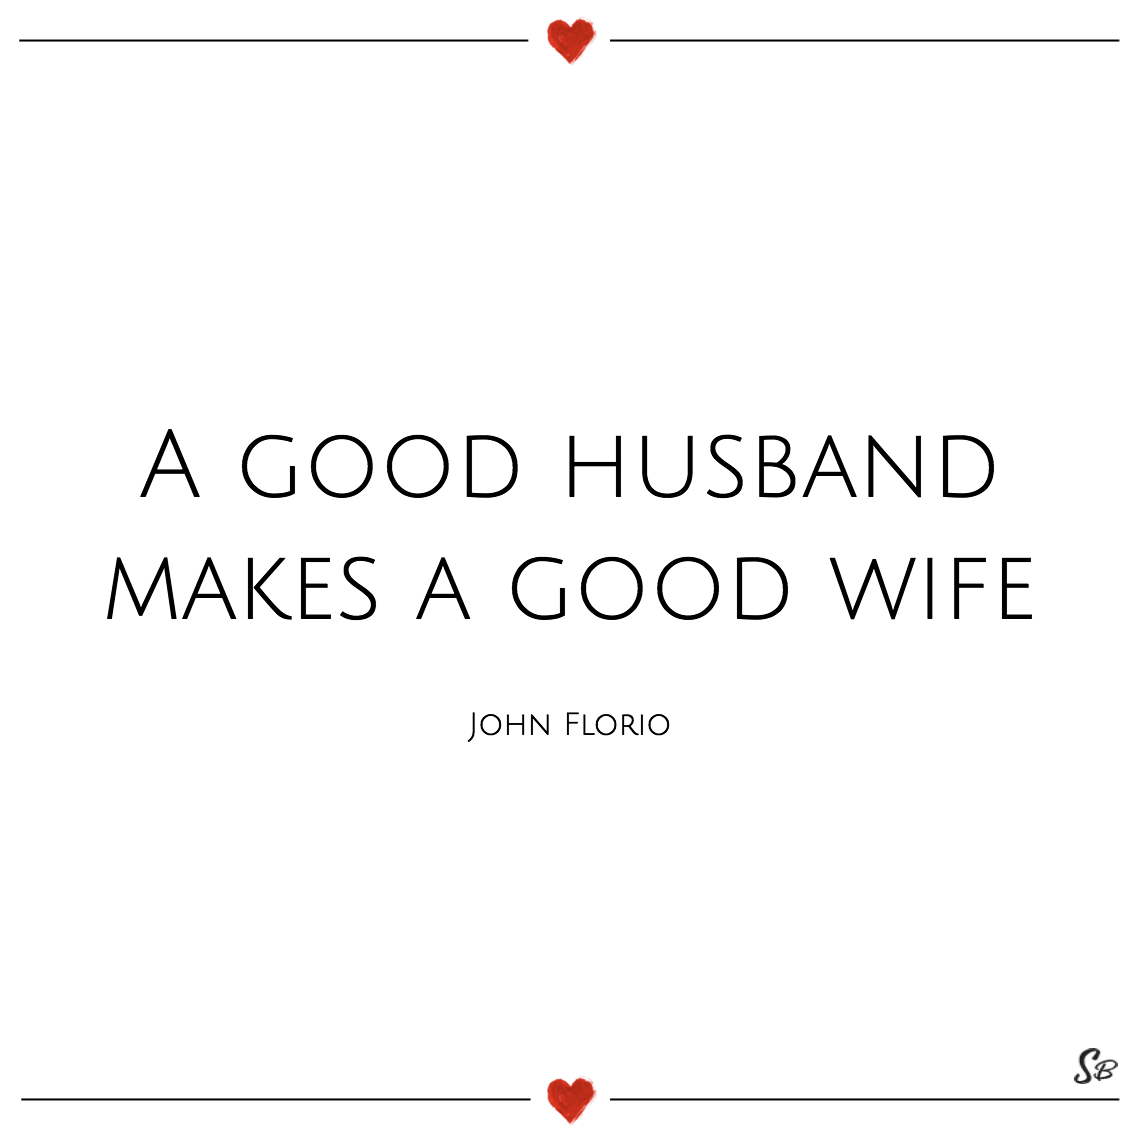 A good husband makes a good wife john florio marriage quotes